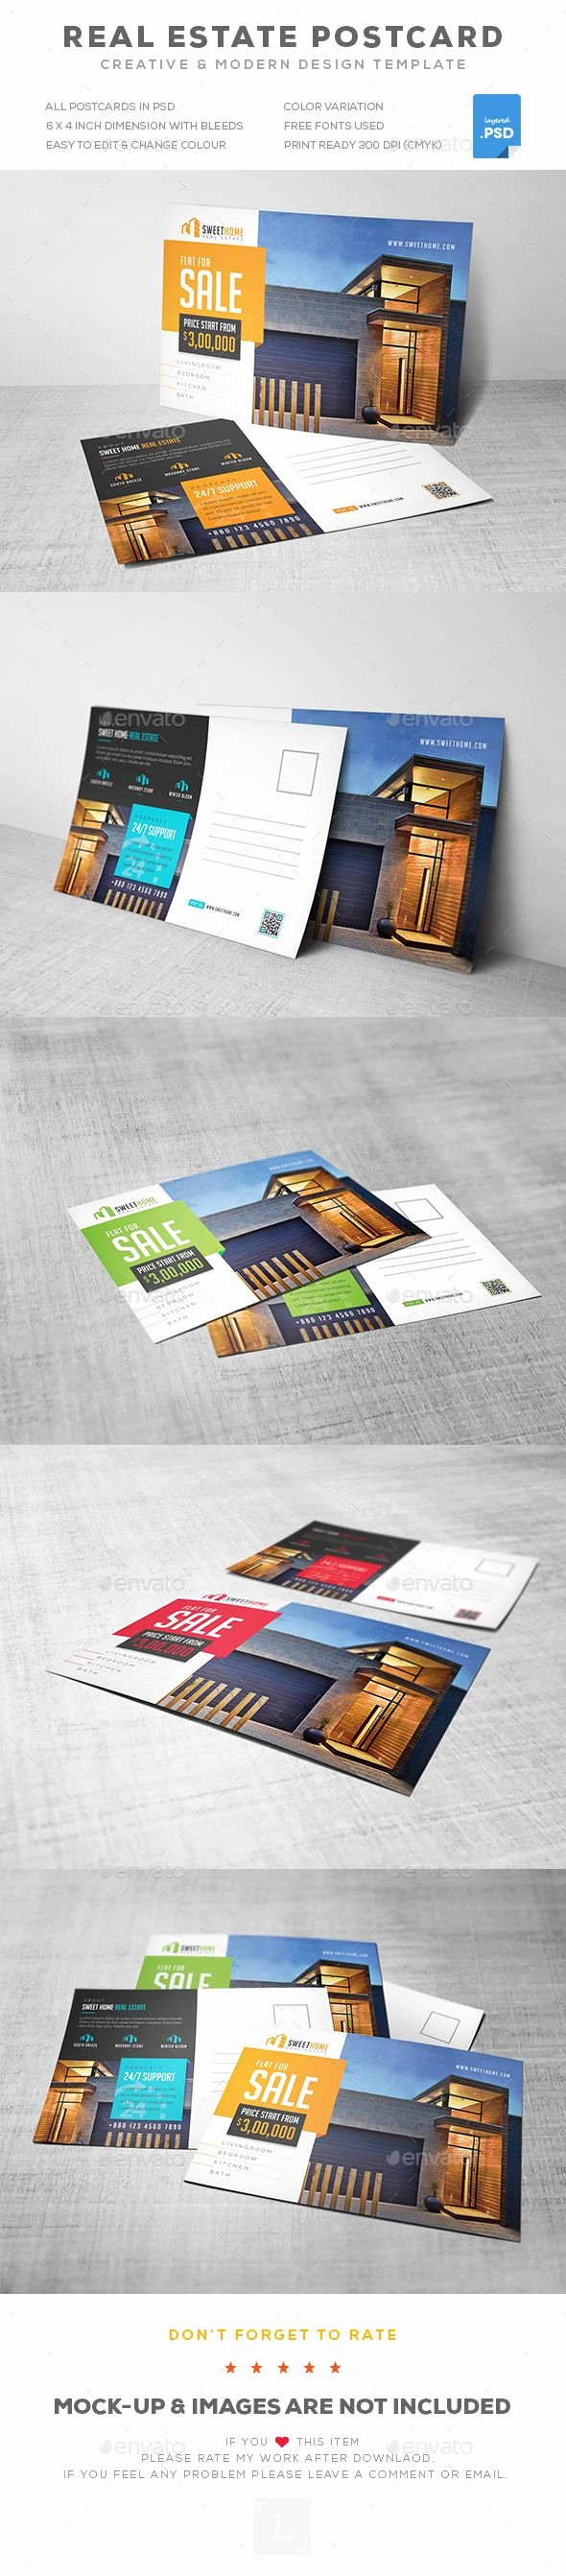 Real Estate Postcards Templates Lovely Best 25 Real Estate Postcards Ideas On Pinterest